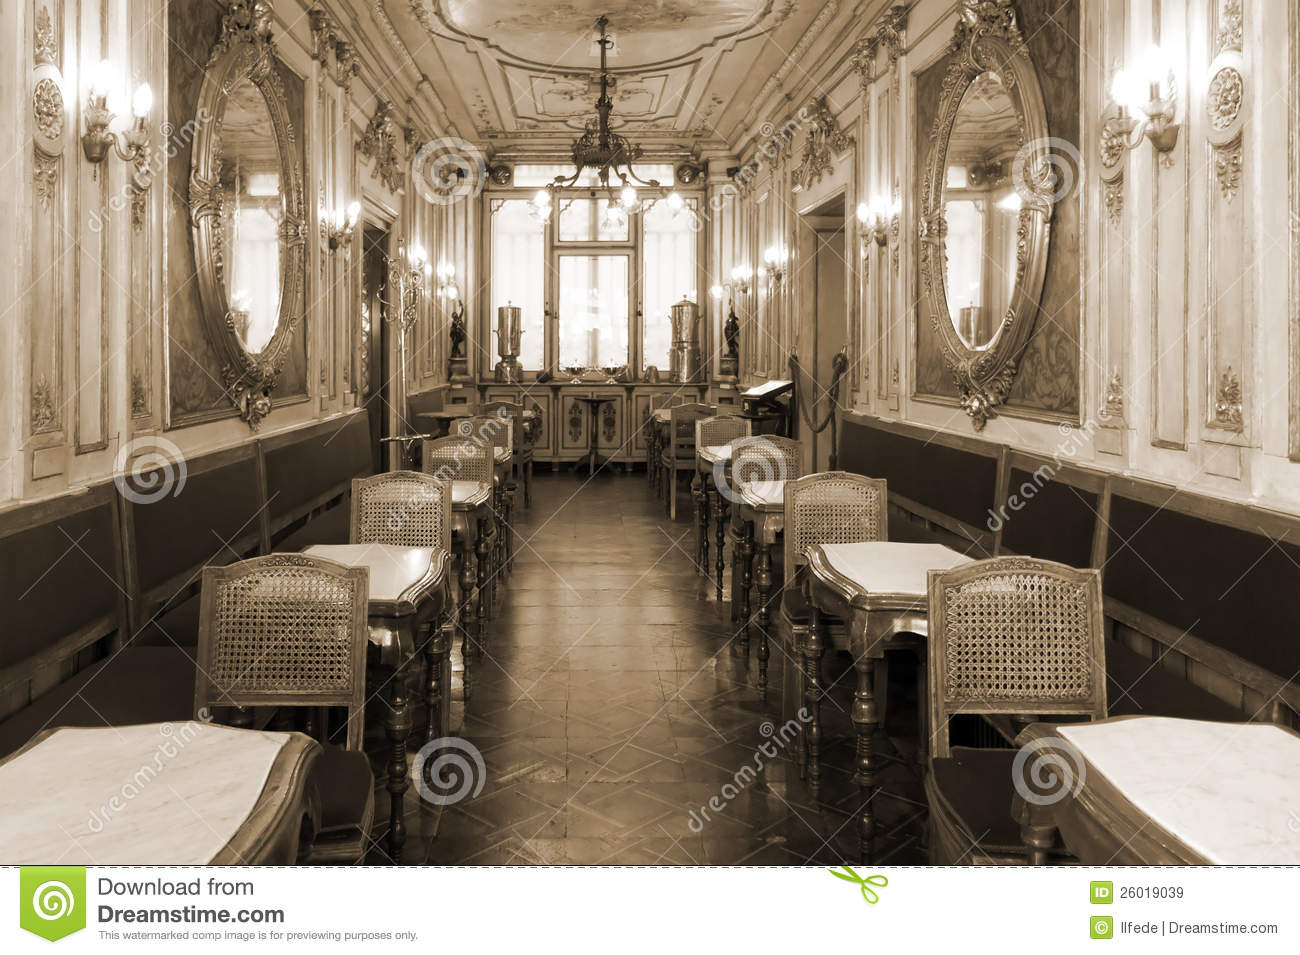 Vintage cafe interior with wooden furniture stock image Vintage interior